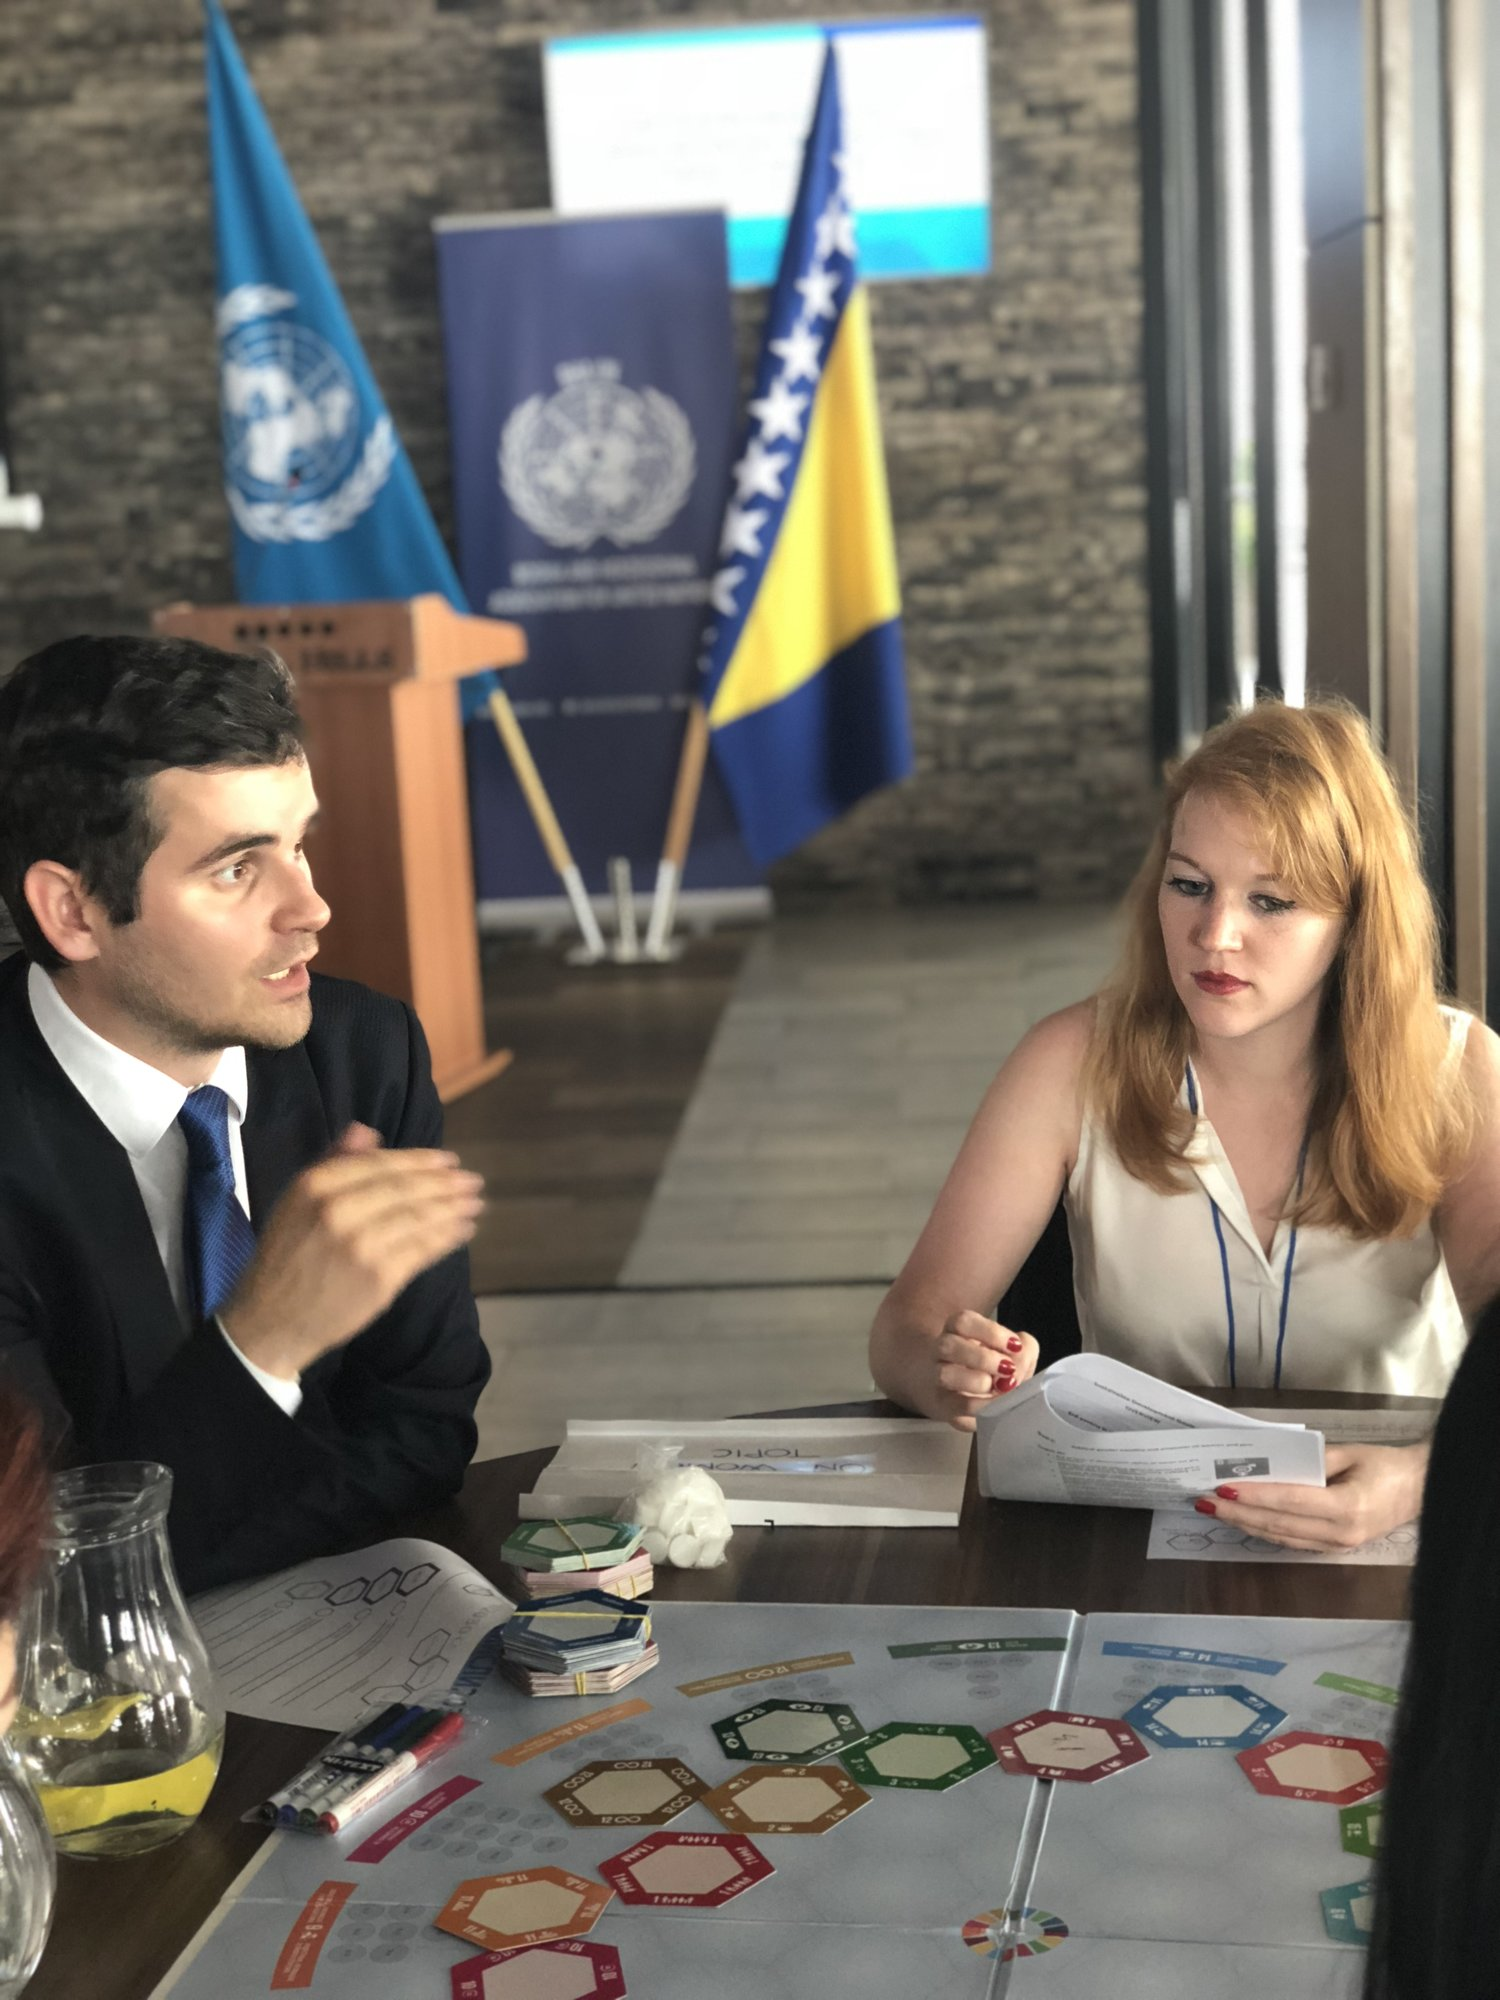 From left to right:  Mak Selimović, President, Bosnia and Herzegovina Association for United Nations  J.H., Sarajevo Model UN '18 Conference Participant